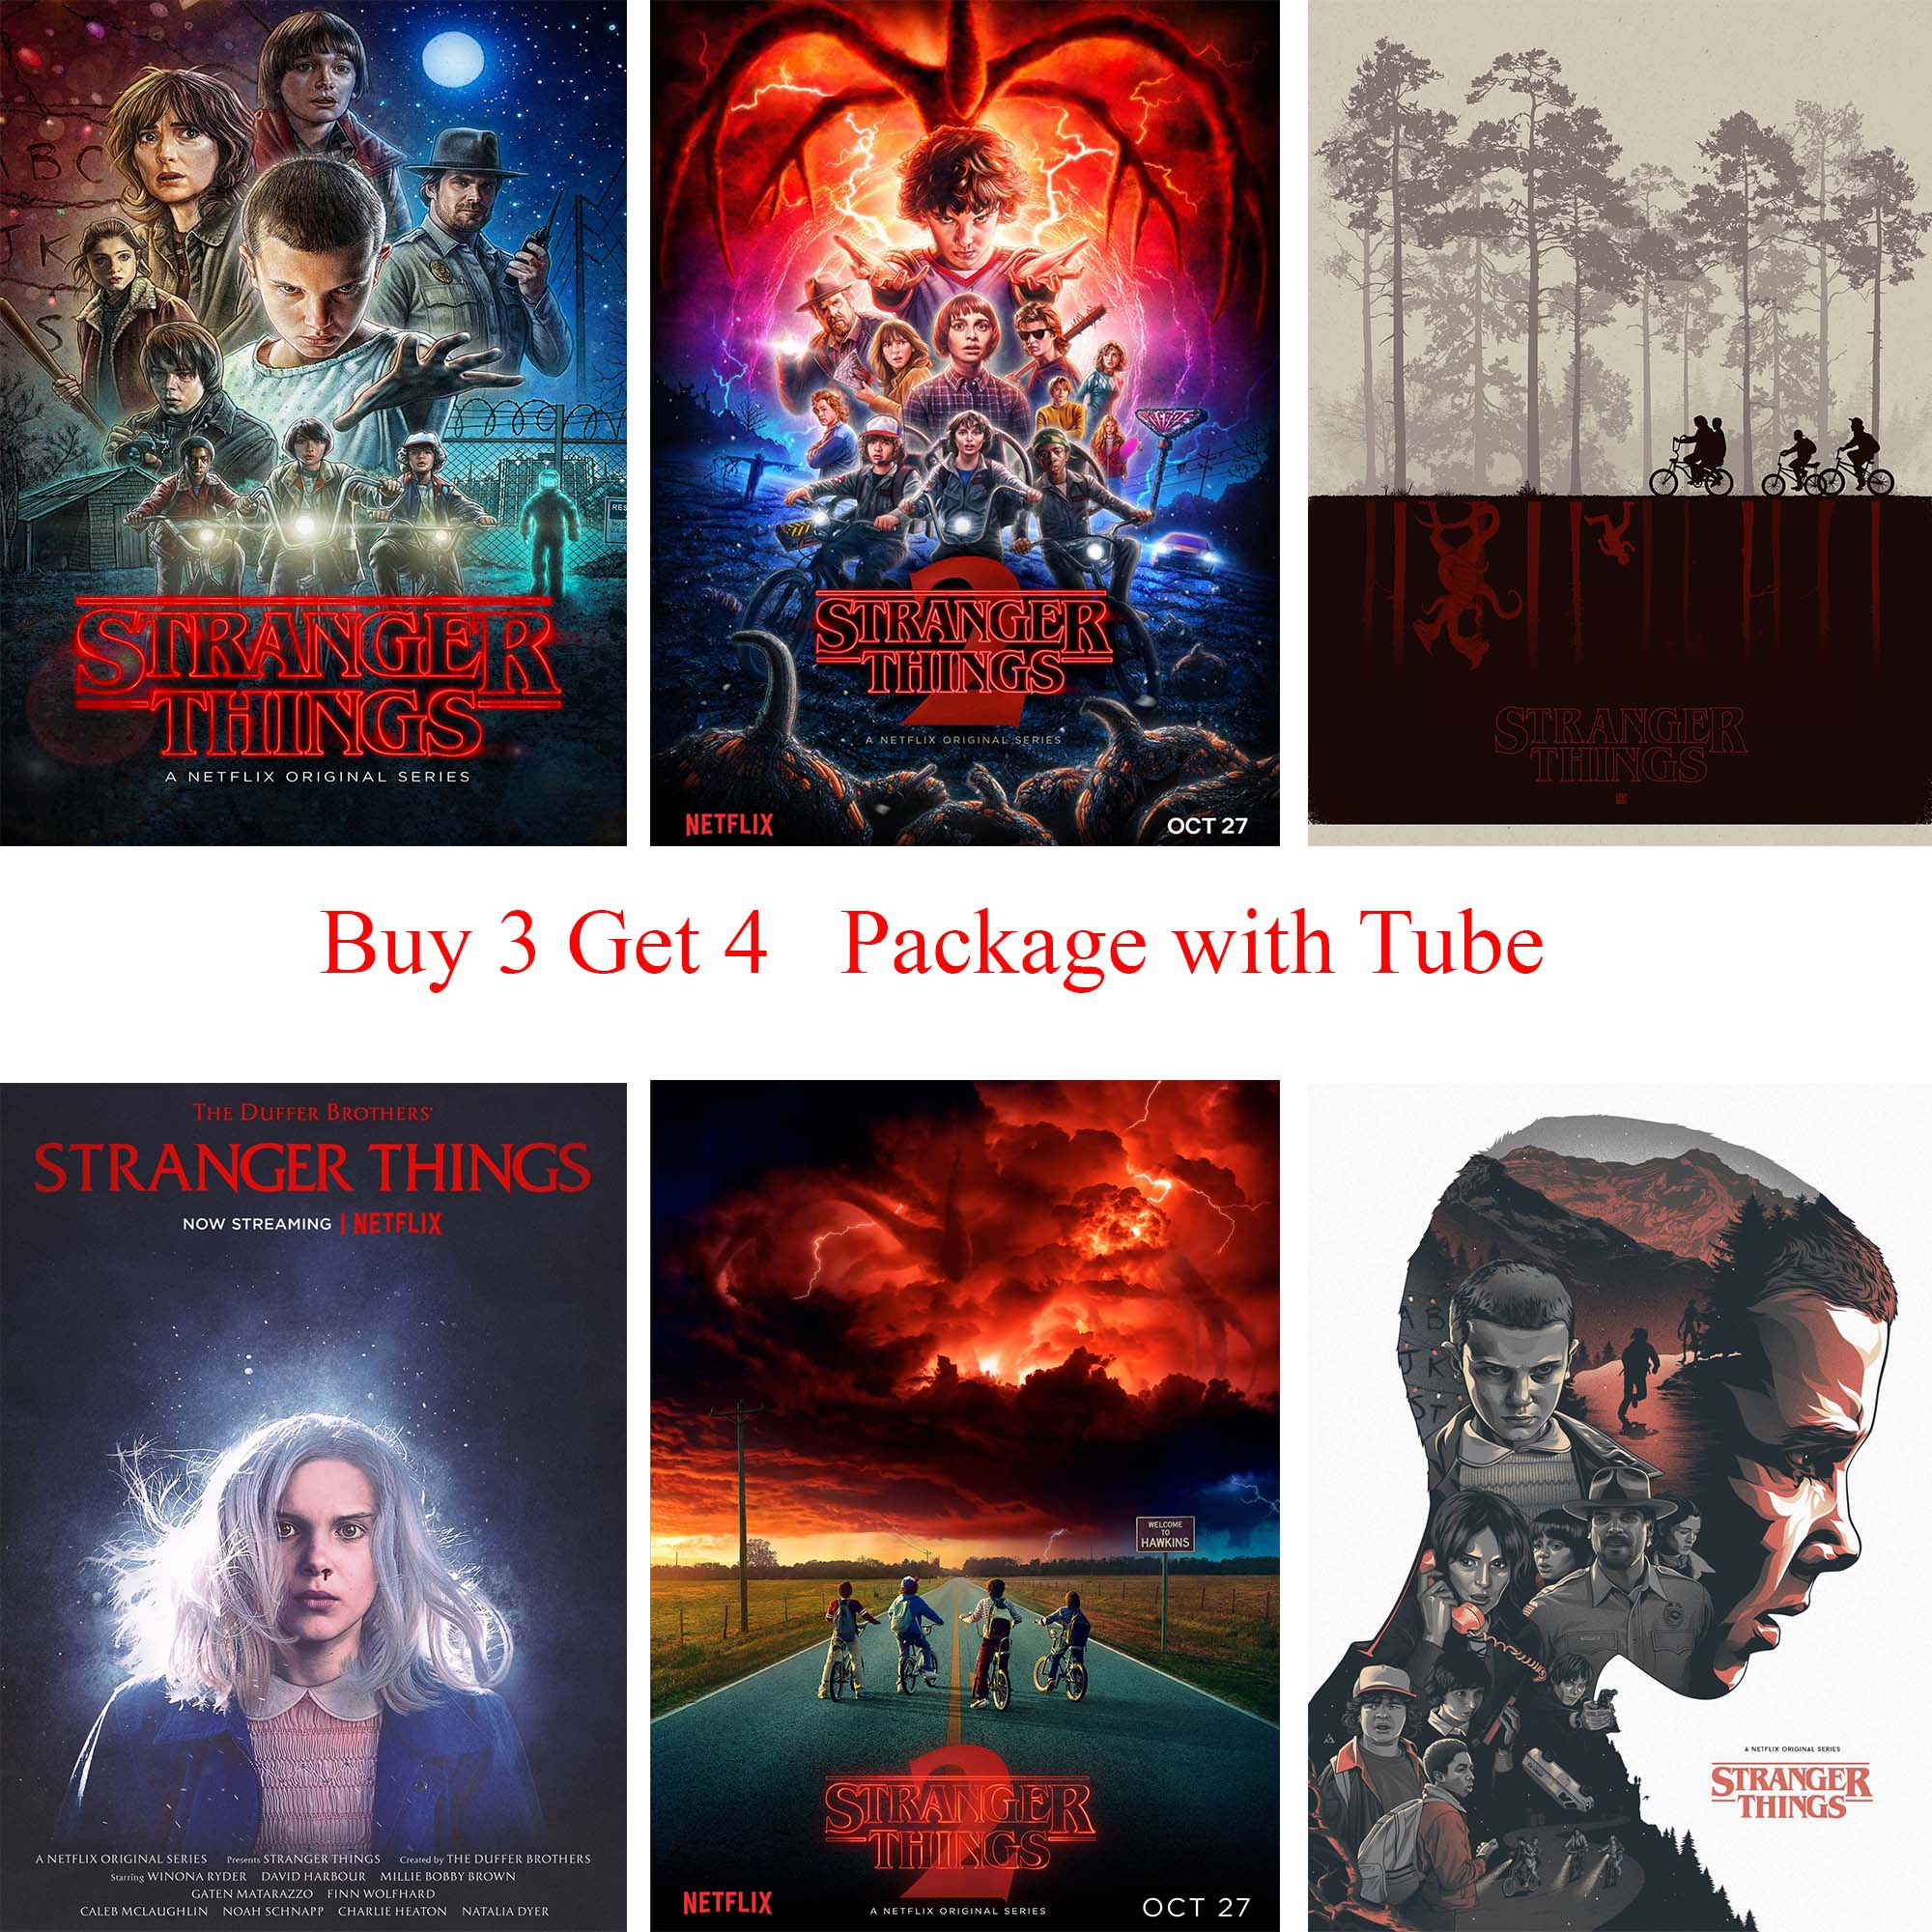 Stranger Things Season 2 Movie Posters Wall Stickers White Coated Paper Prints Home Decoration Home Art Brand